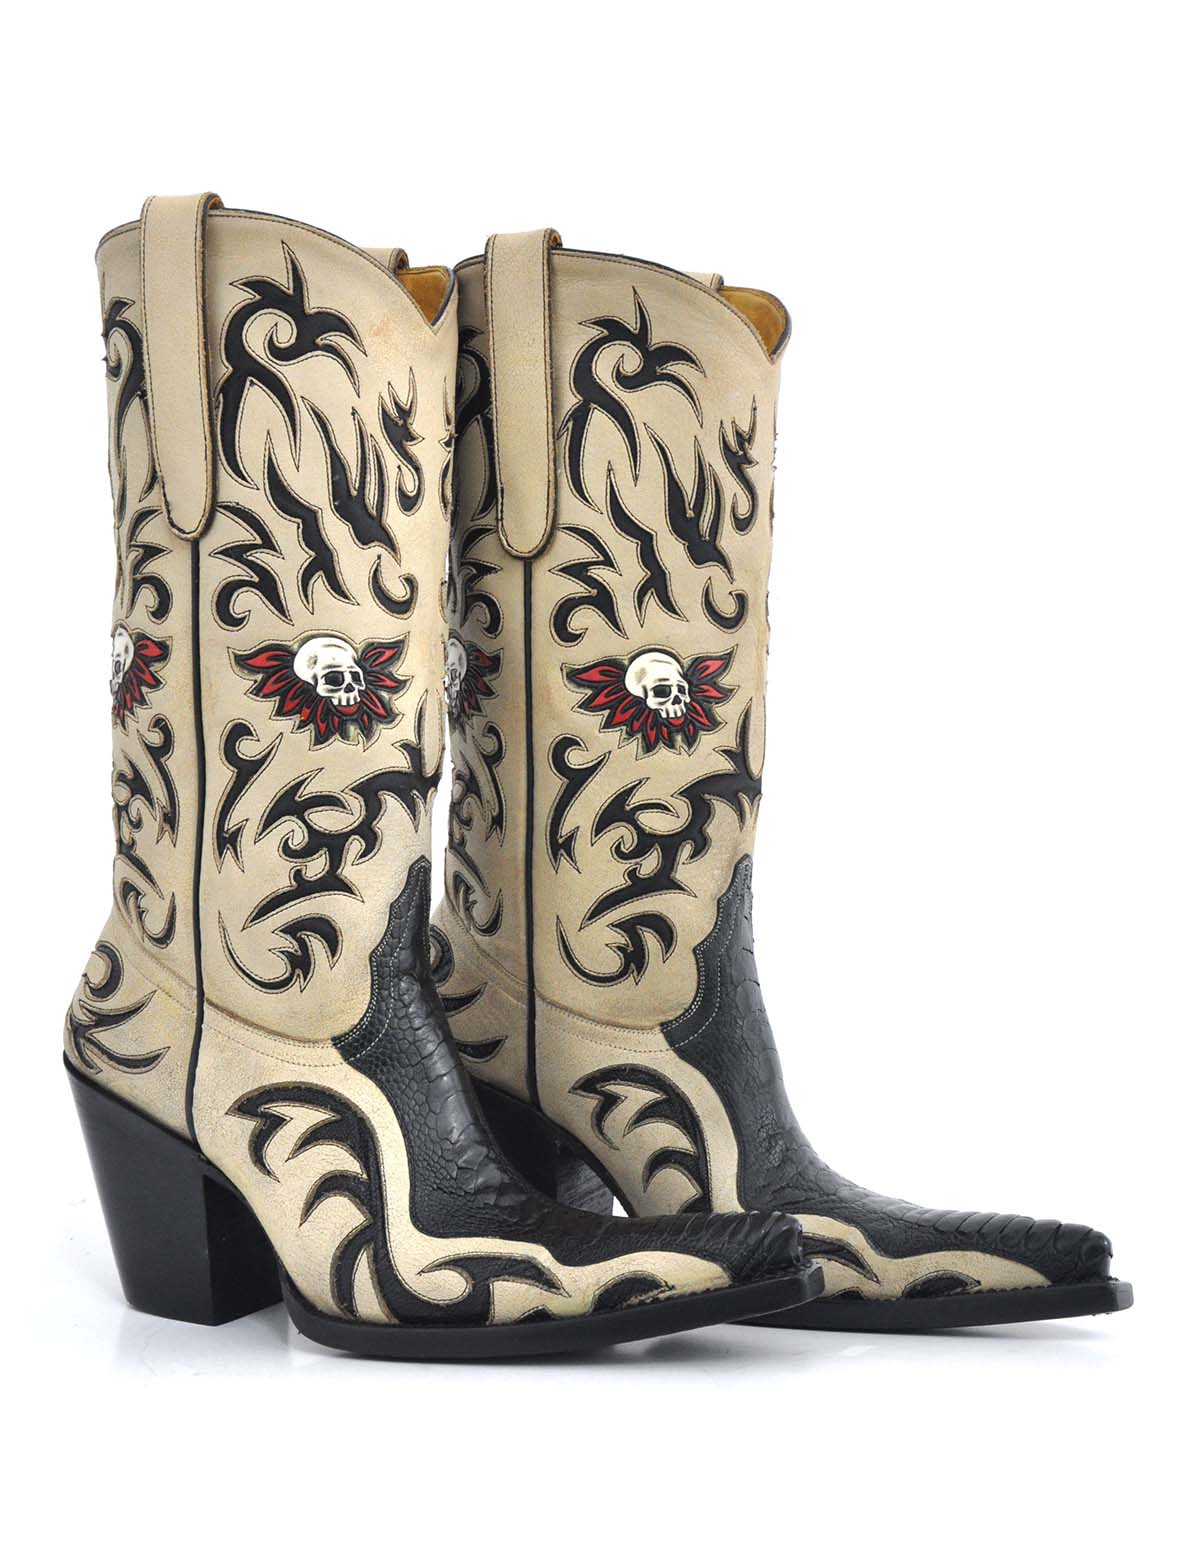 Handmade Cowboy Boots from Liberty Boot Co | Cowboy Boot Passion ...